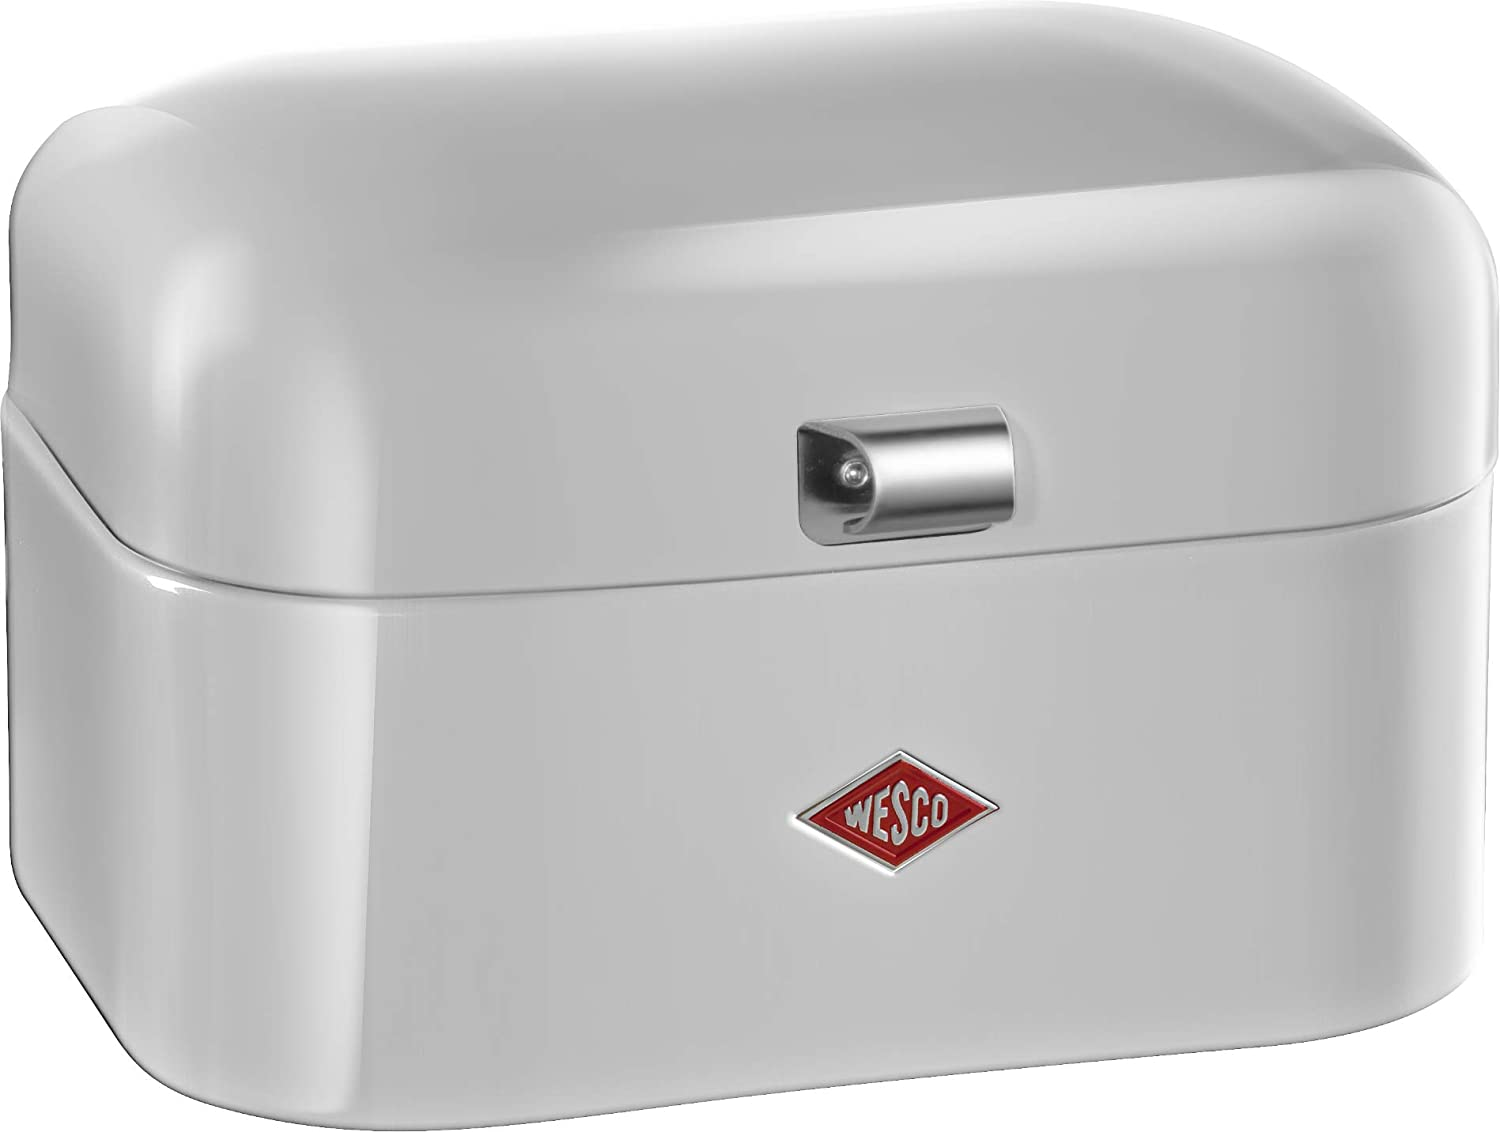 Wesco Single Grandy – German Designed-Steel Bread Box for Kitchen Storage Container, Cool Grey, 21.50x28.0x17.0 cm